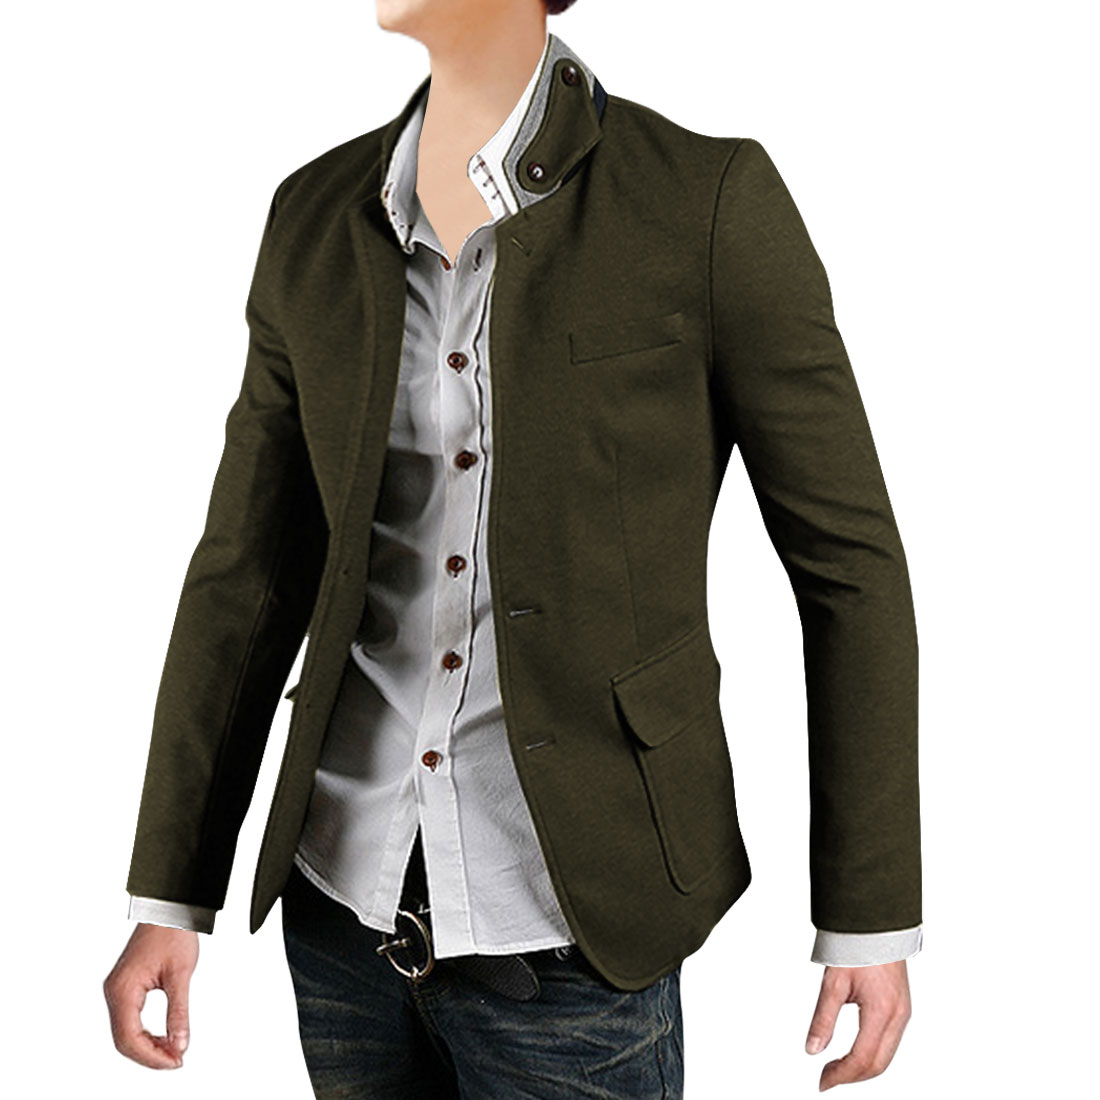 Men Panel Collar Pockets Front Blazer Army Green M